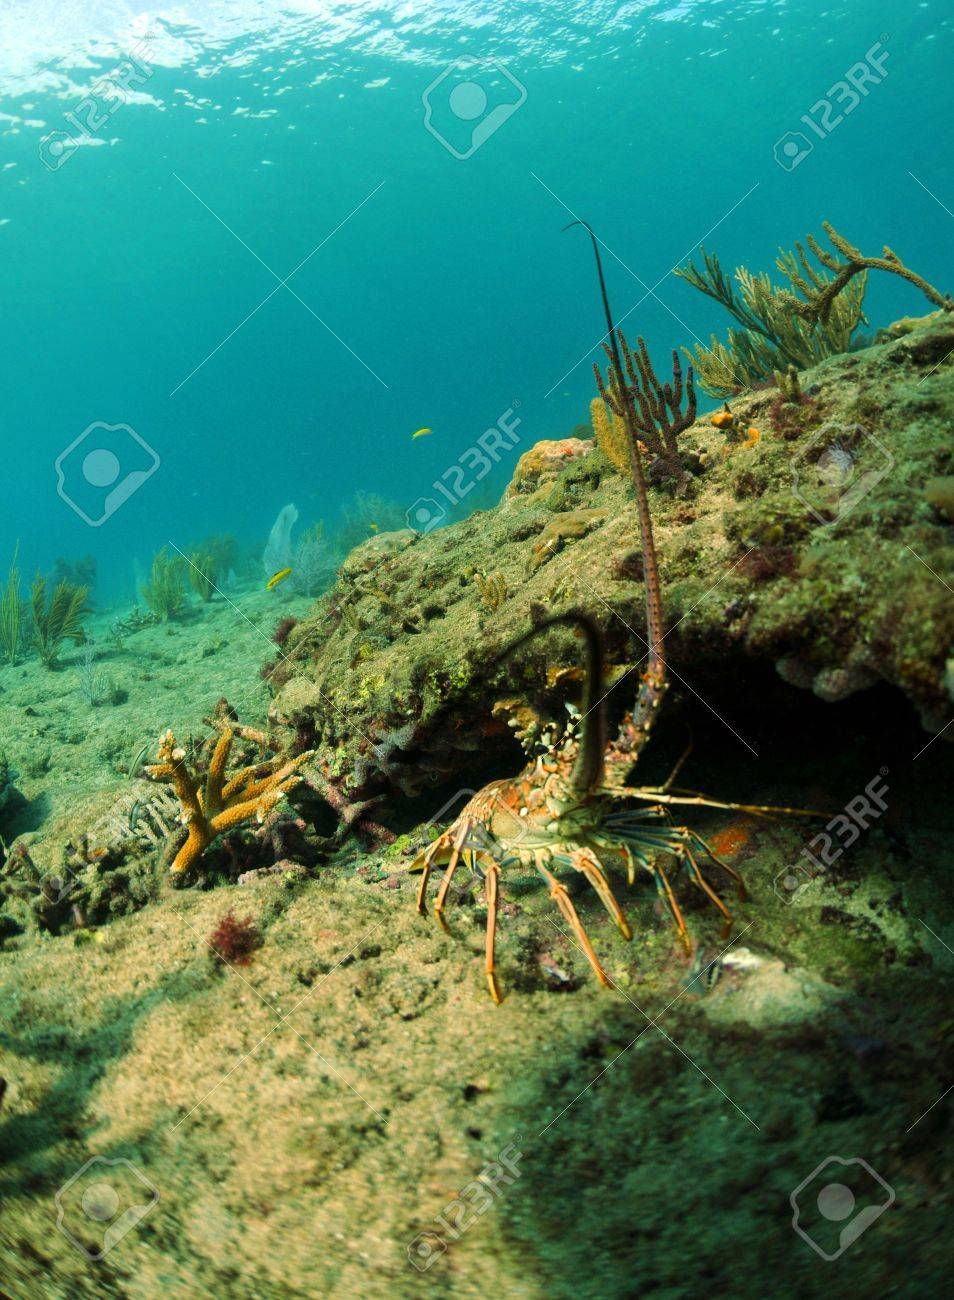 Lobster fishing spiny lobster in natural habitat in ocean with gorgonians in background stock photo